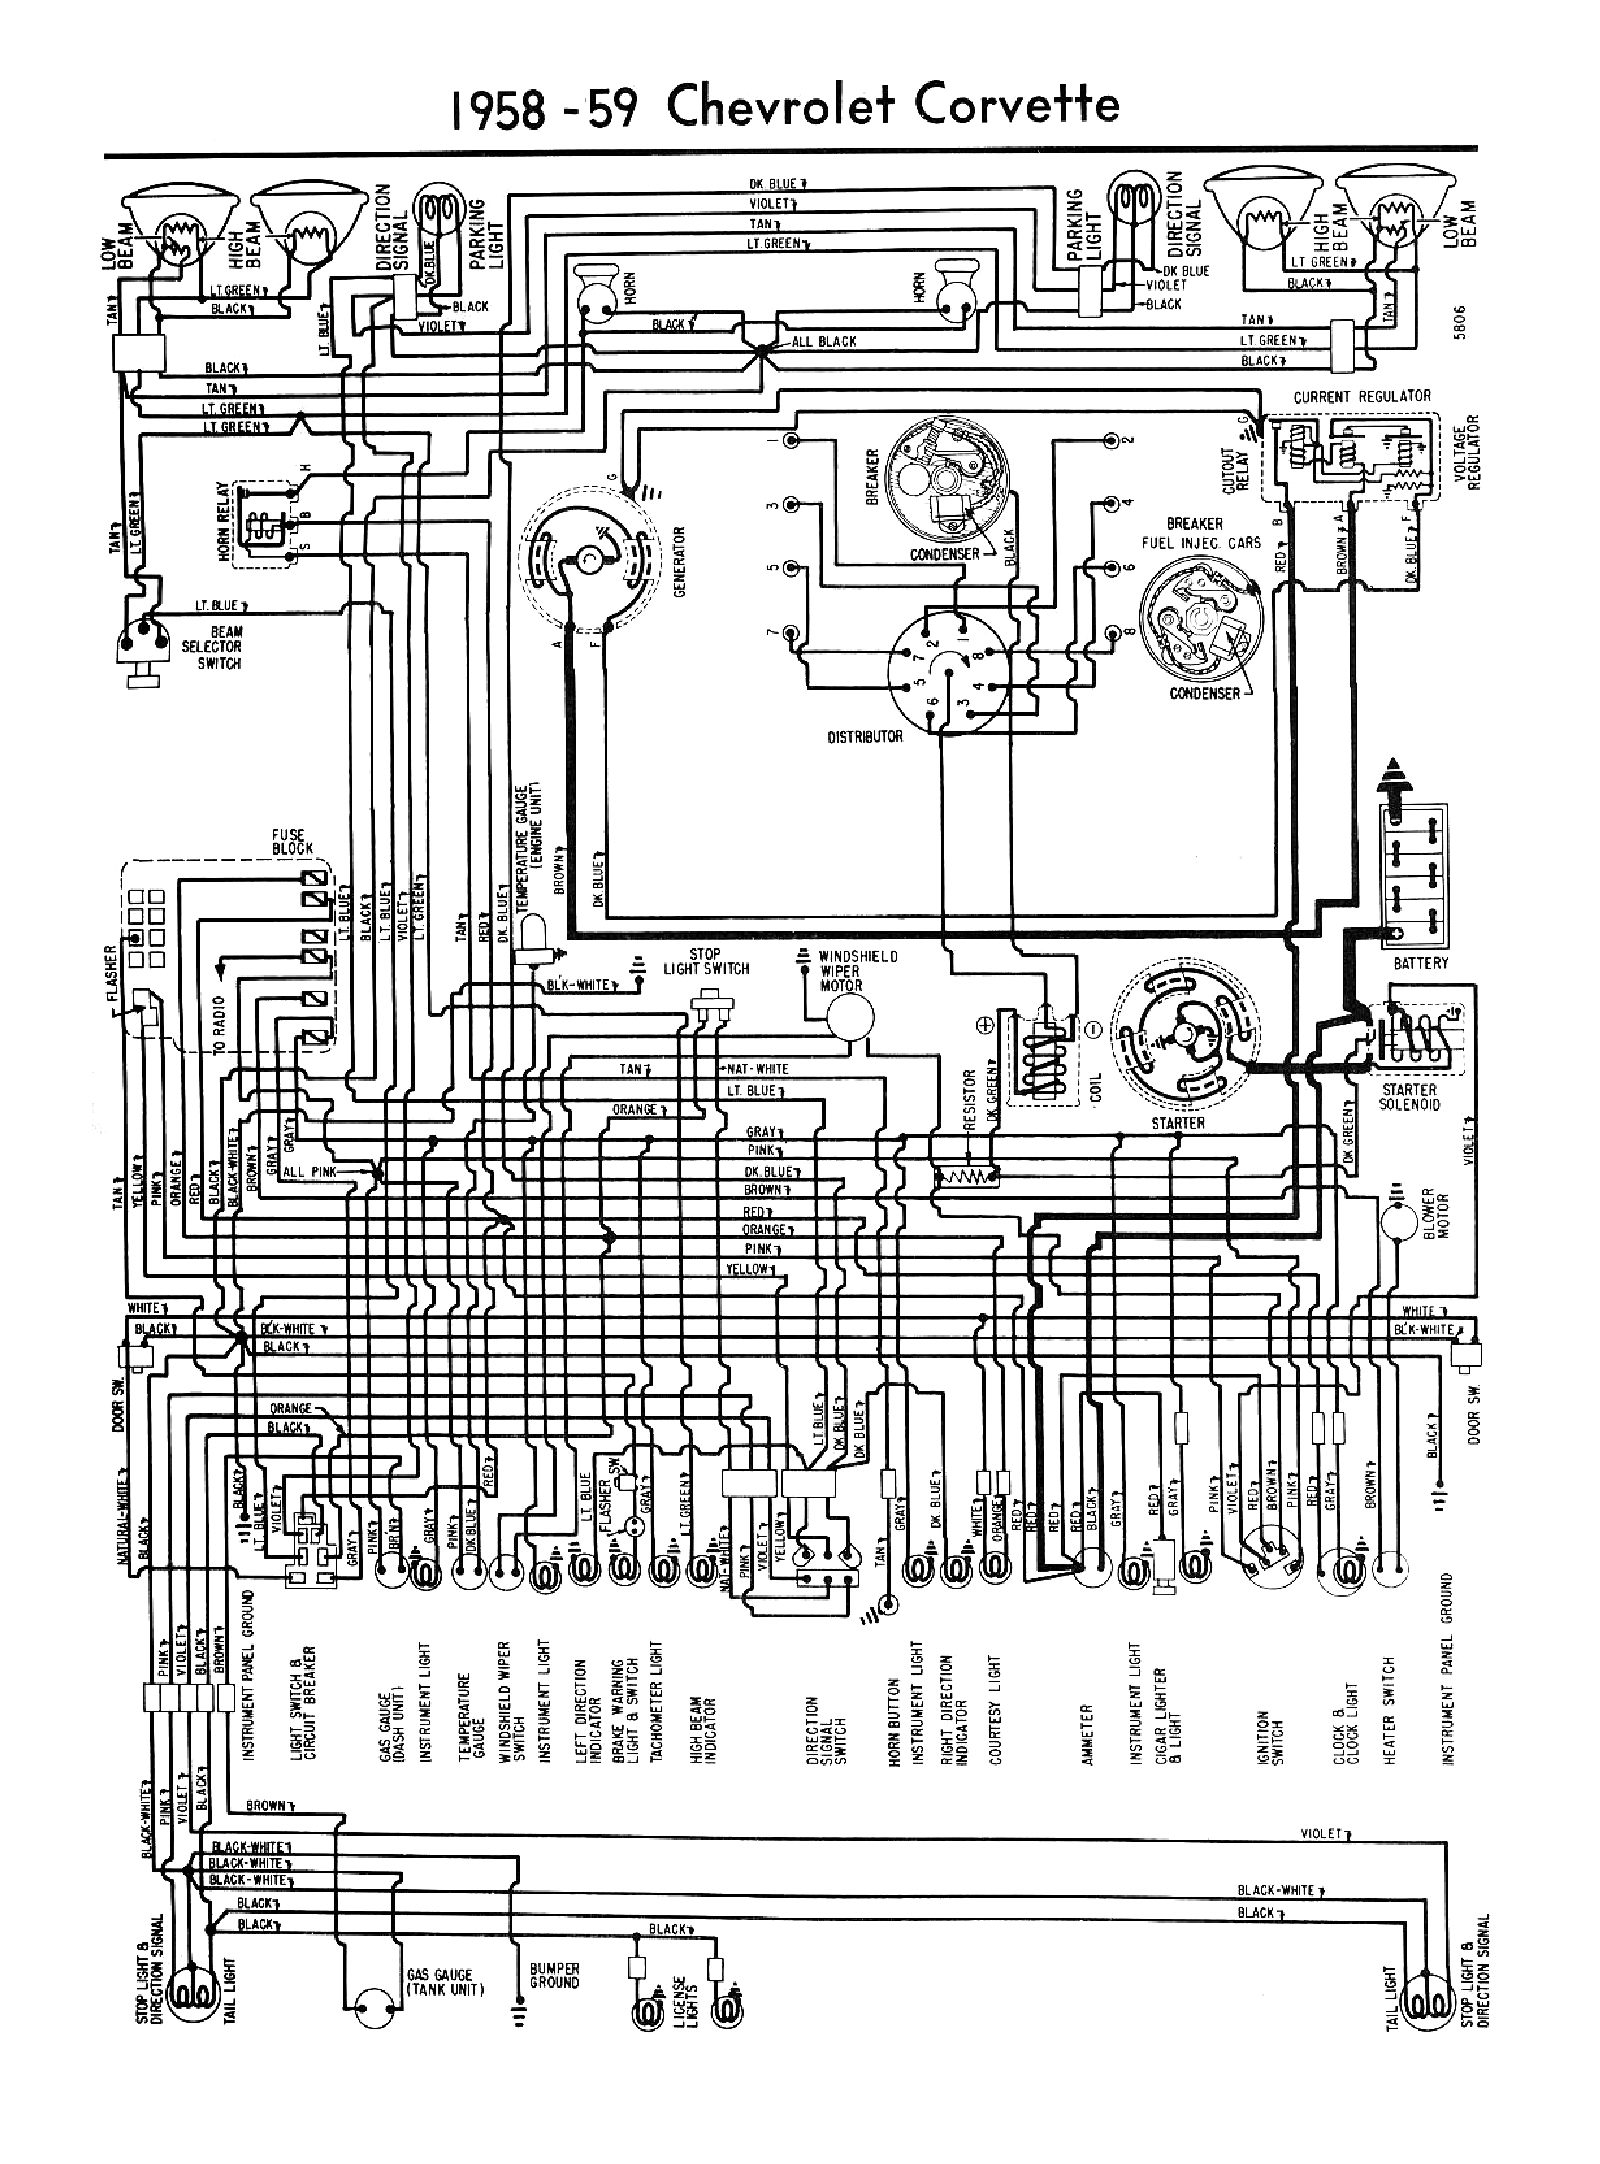 chevy wiring diagrams rh chevy oldcarmanualproject com 1979 Corvette Wiring Schematic 1969 Corvette Wiring Schematic